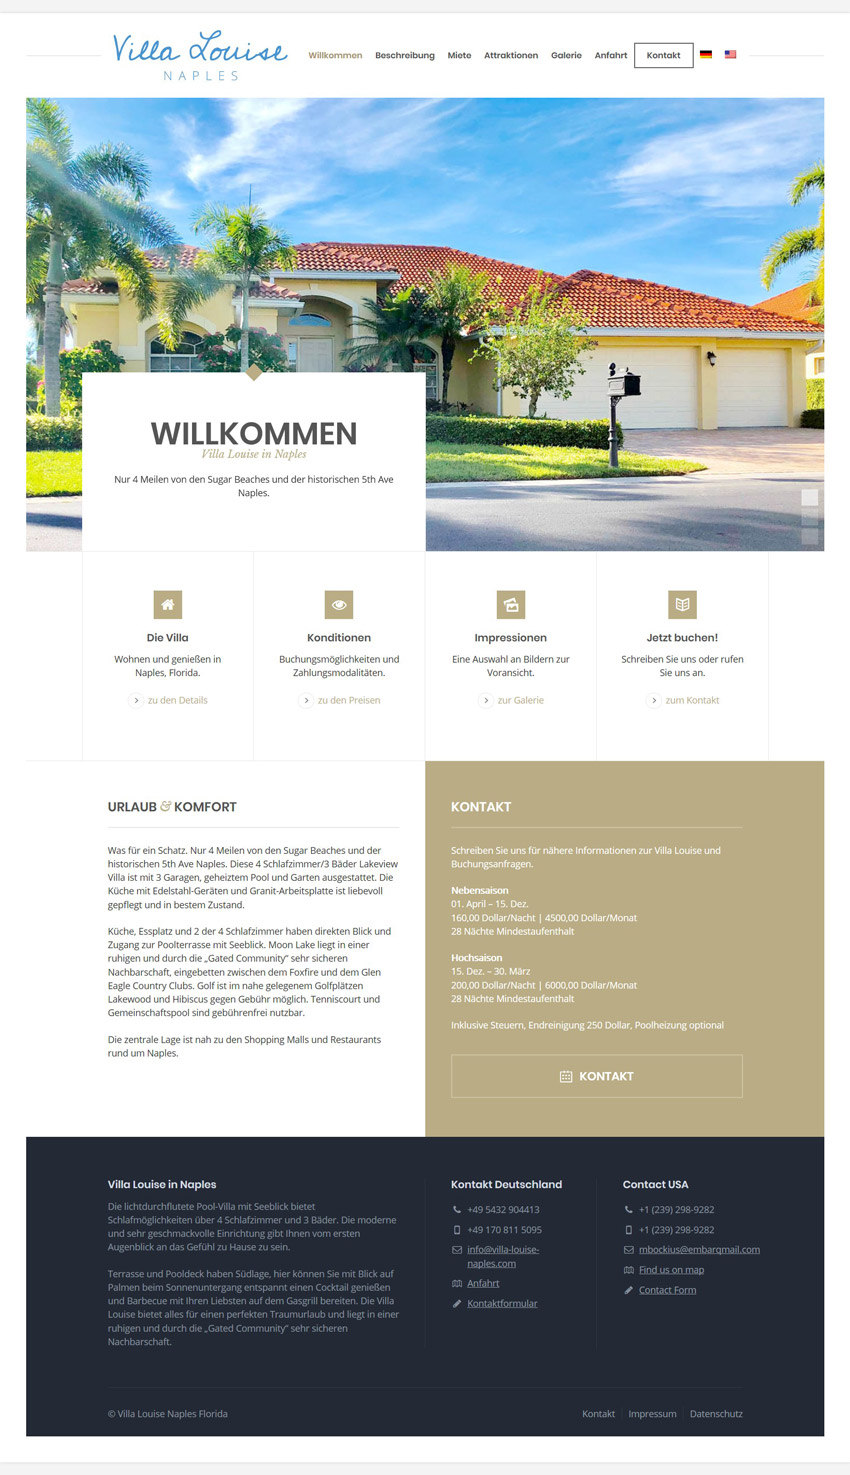 Webdesign-Homepage-Ferienwohnung-Villa-Louise-in-Naples-Florida